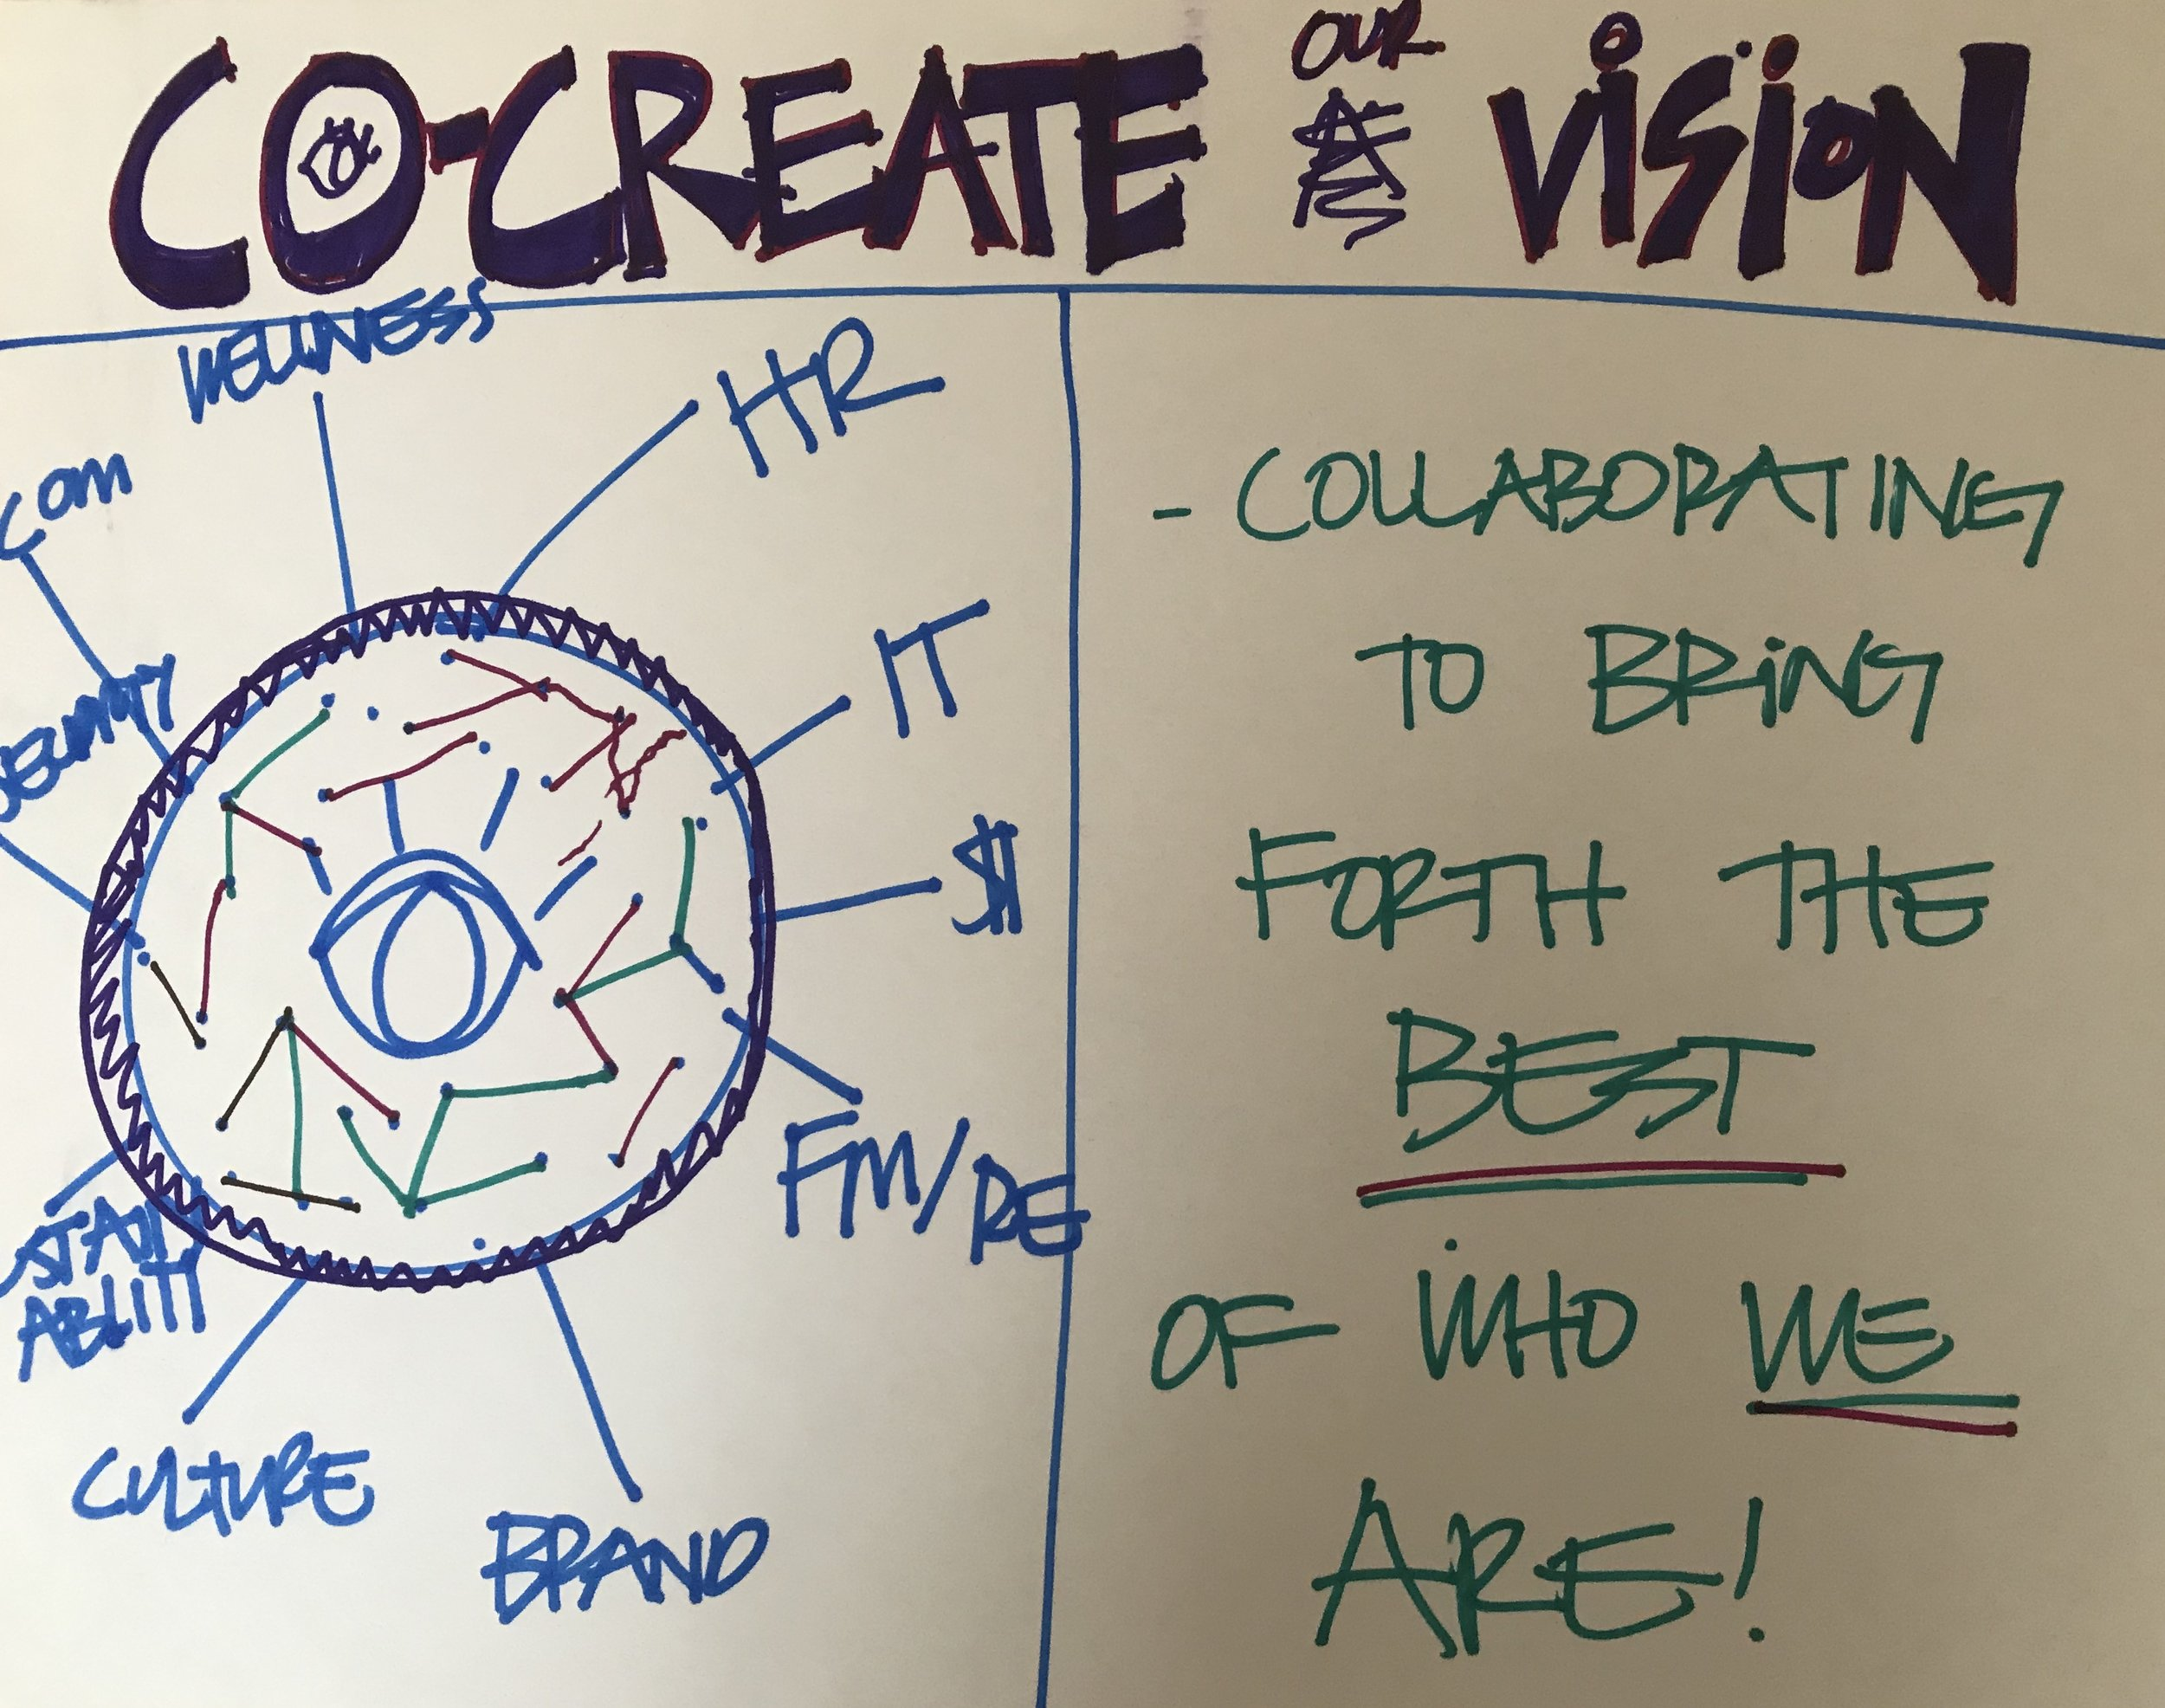 Co-Create Our Vision